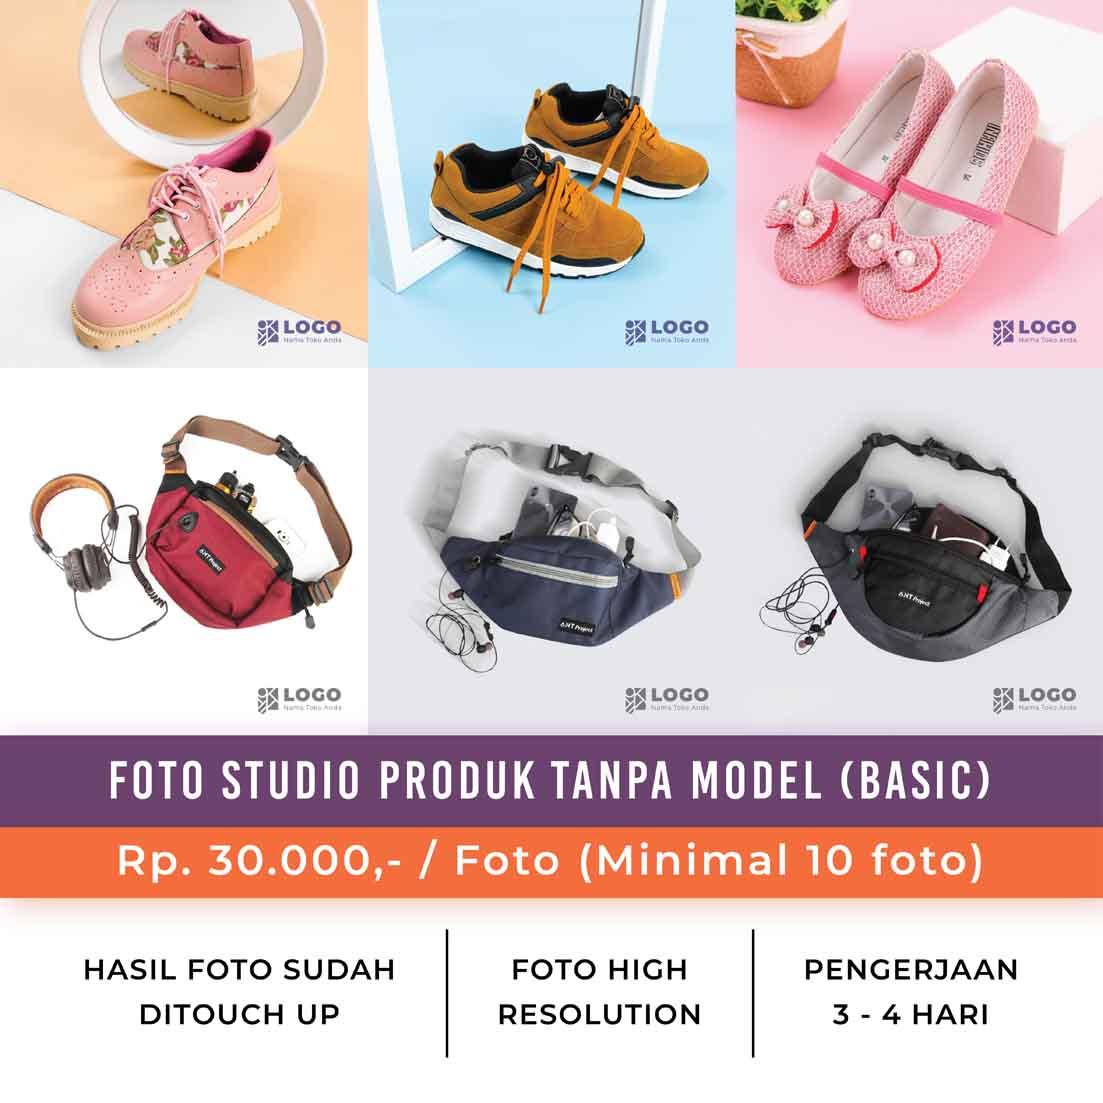 Foto Studio Produk Tanpa Model - Basic